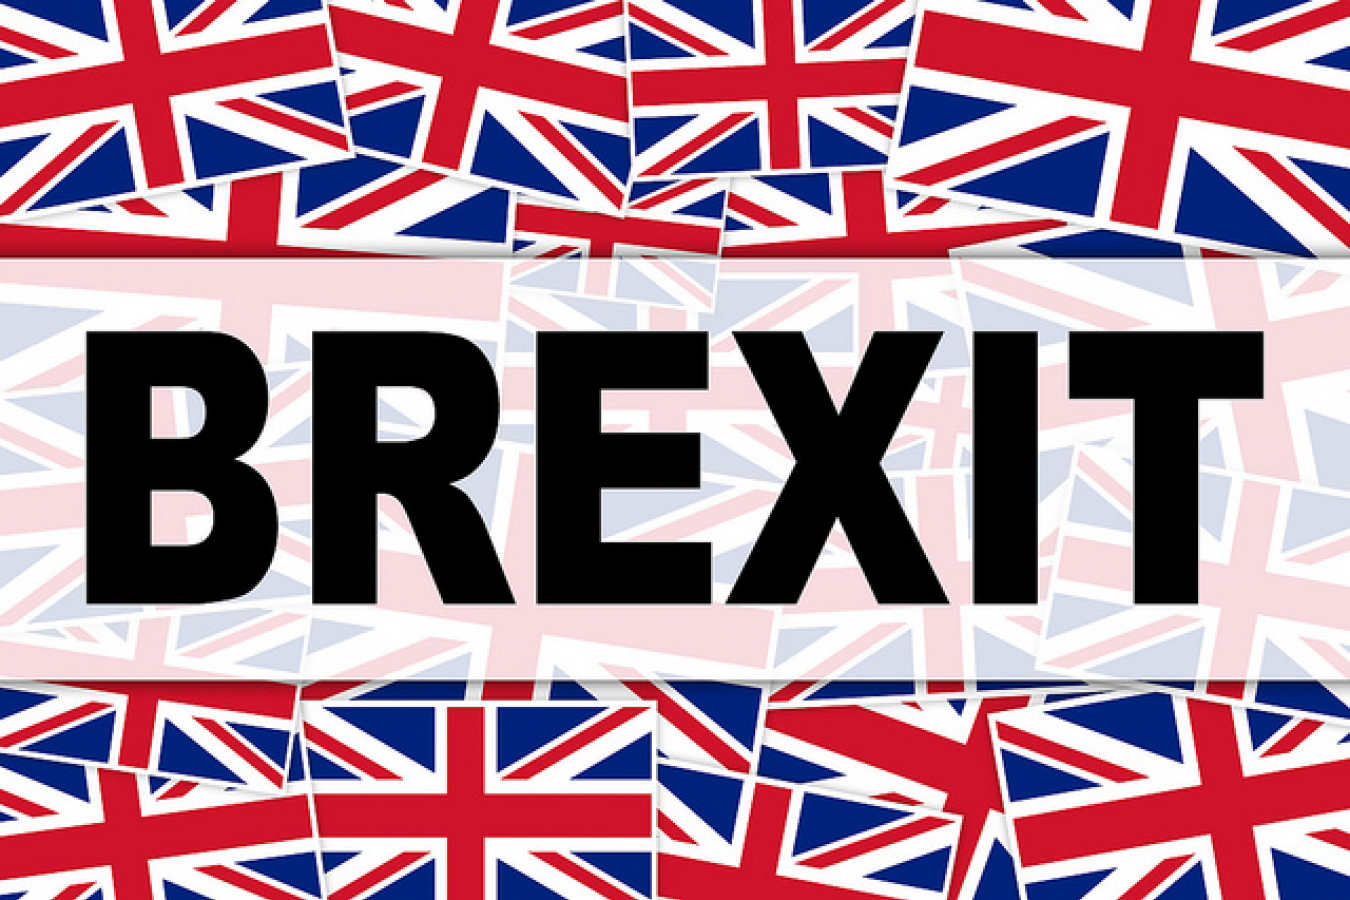 UK visa fee increases from 29 March 2019 Brexit Day